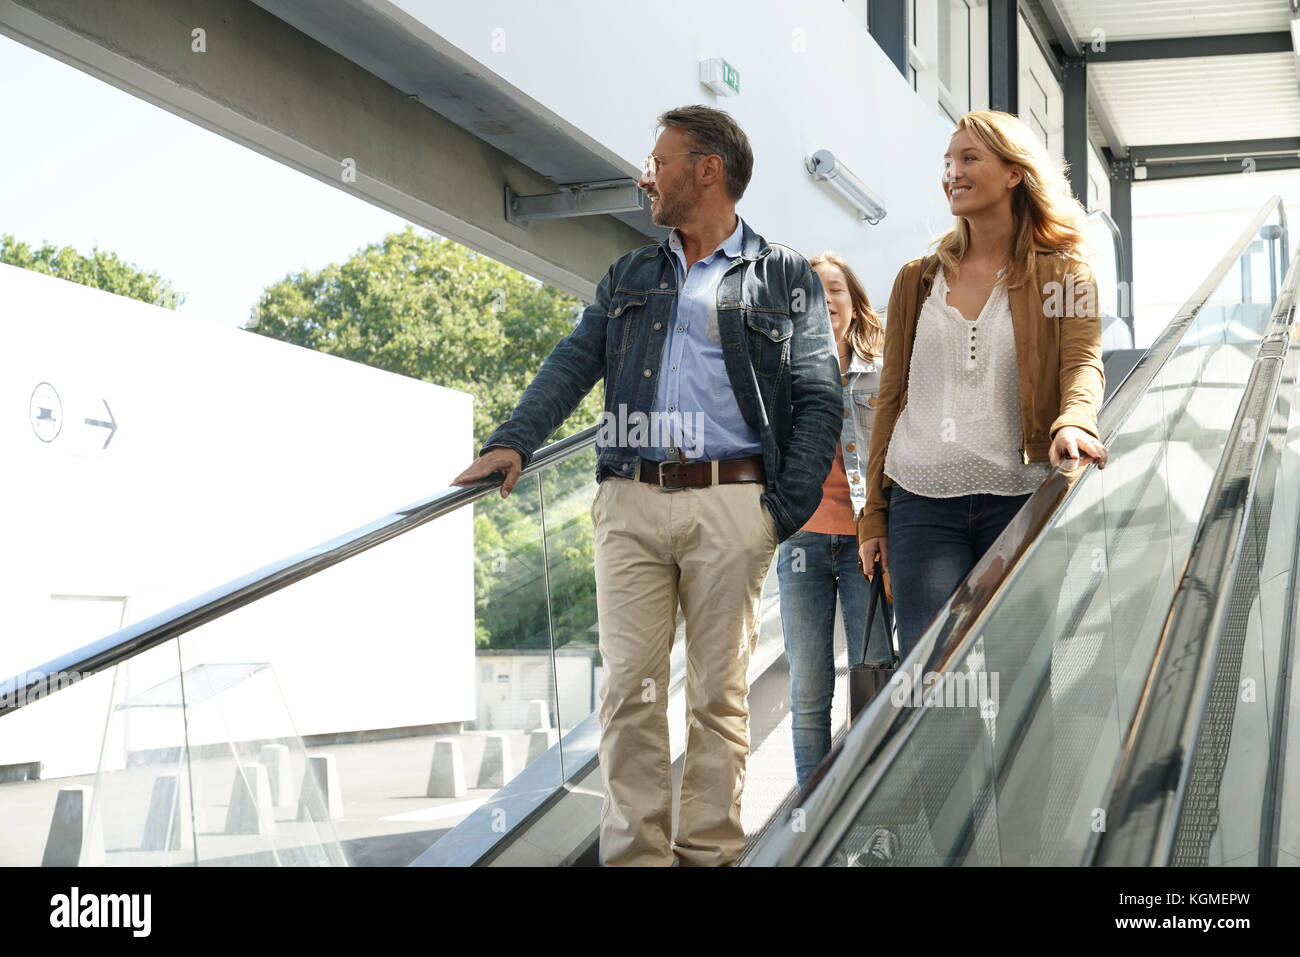 Familie, Rolltreppe der Shopping Mall Stockbild